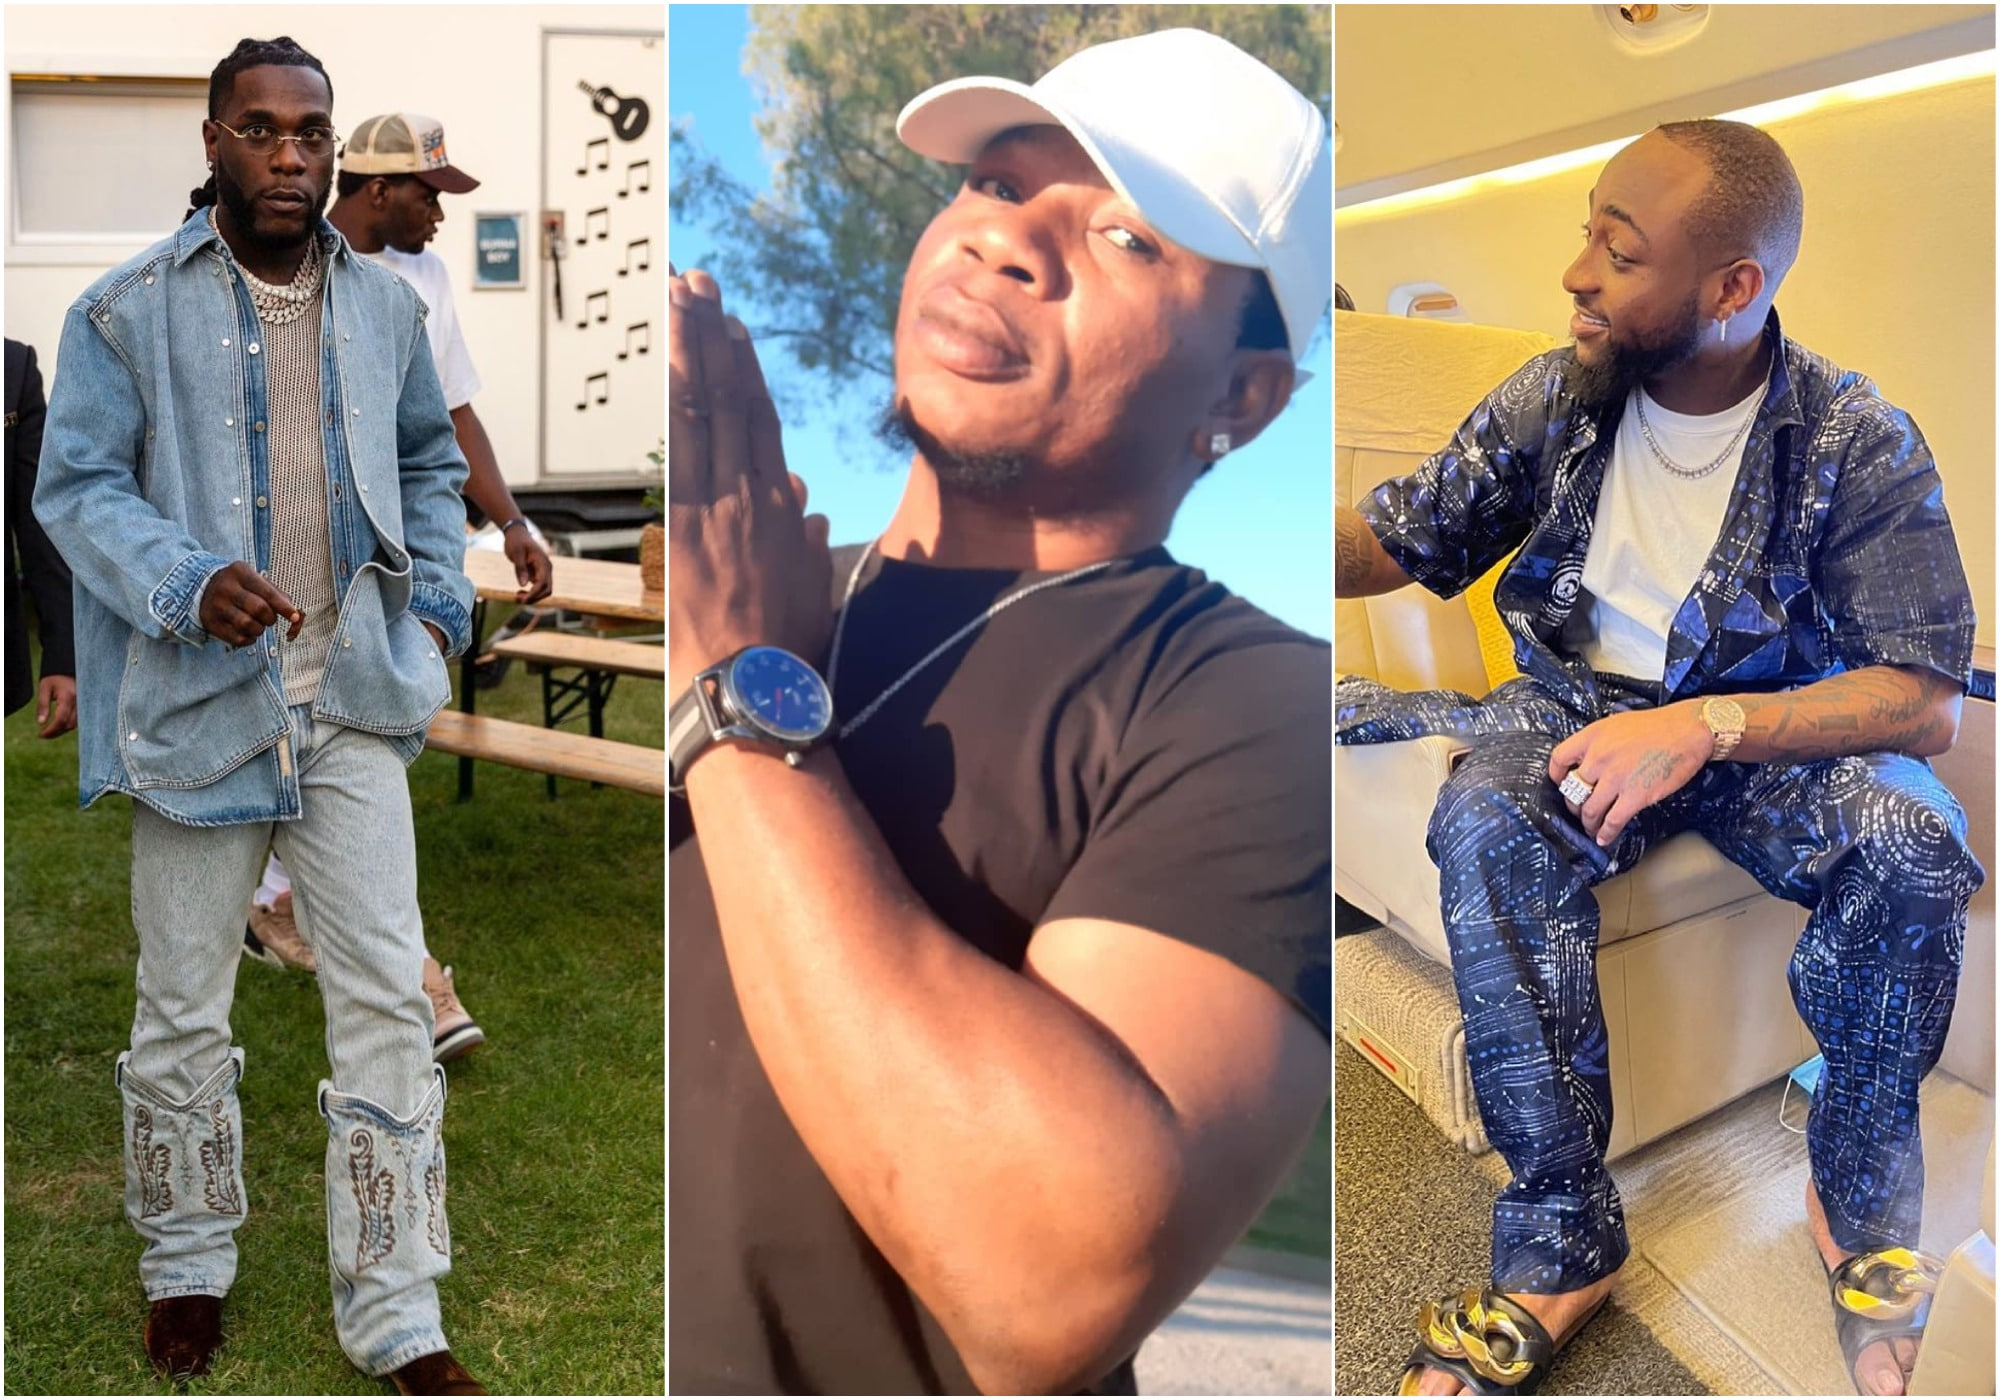 Reactions as popular Nigerian rapper cries for help